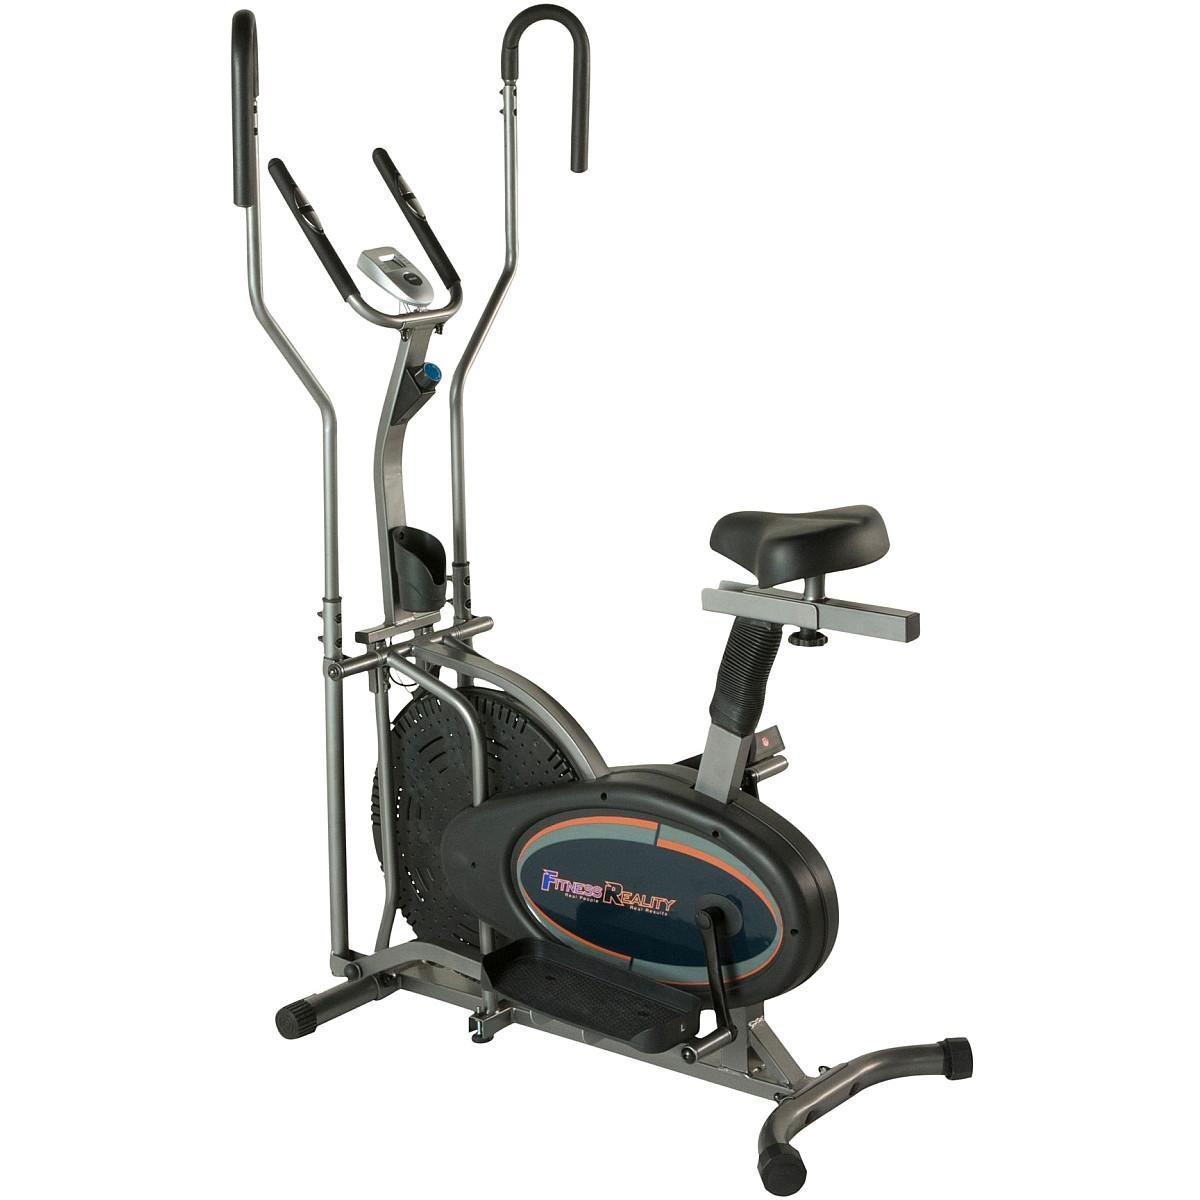 FITNESS REALITY E3000 2-IN-1 AIR ELLIPTICAL AND EXERCISE BIKE by Fitness Reality